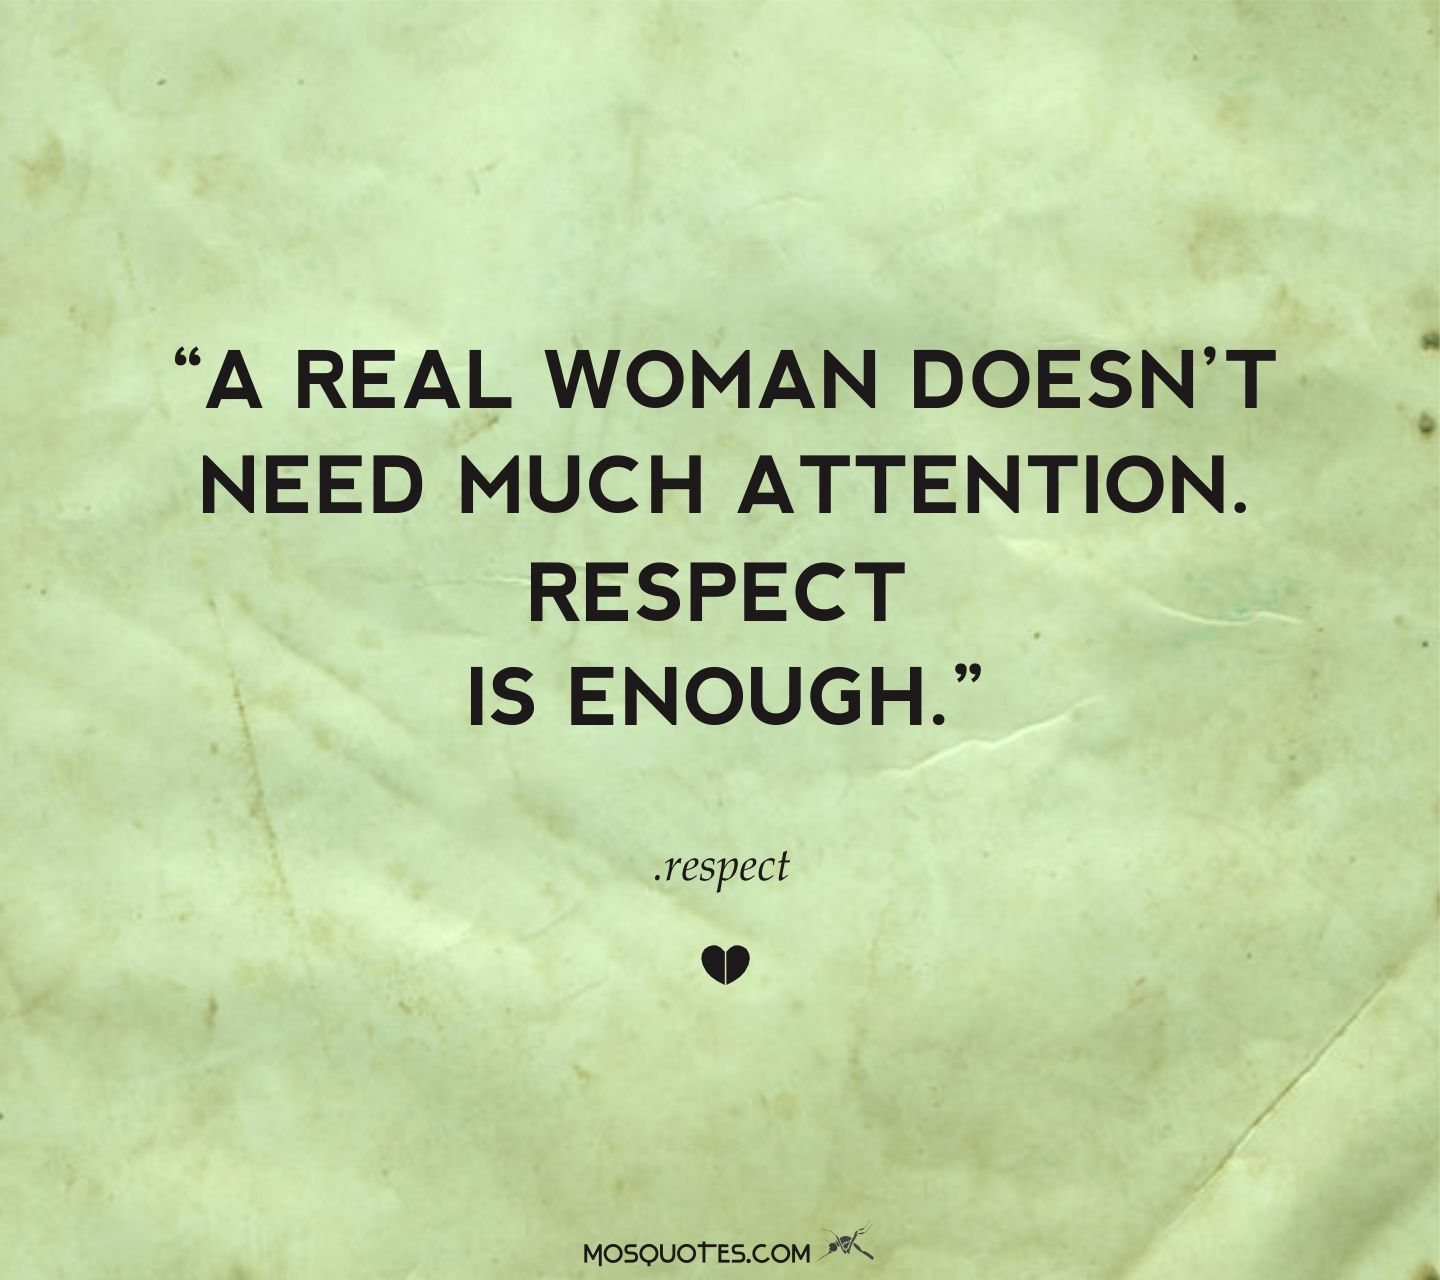 Love And Respect Quotes Love Quotes For Him A Real Woman Doesn't Need Much Attention